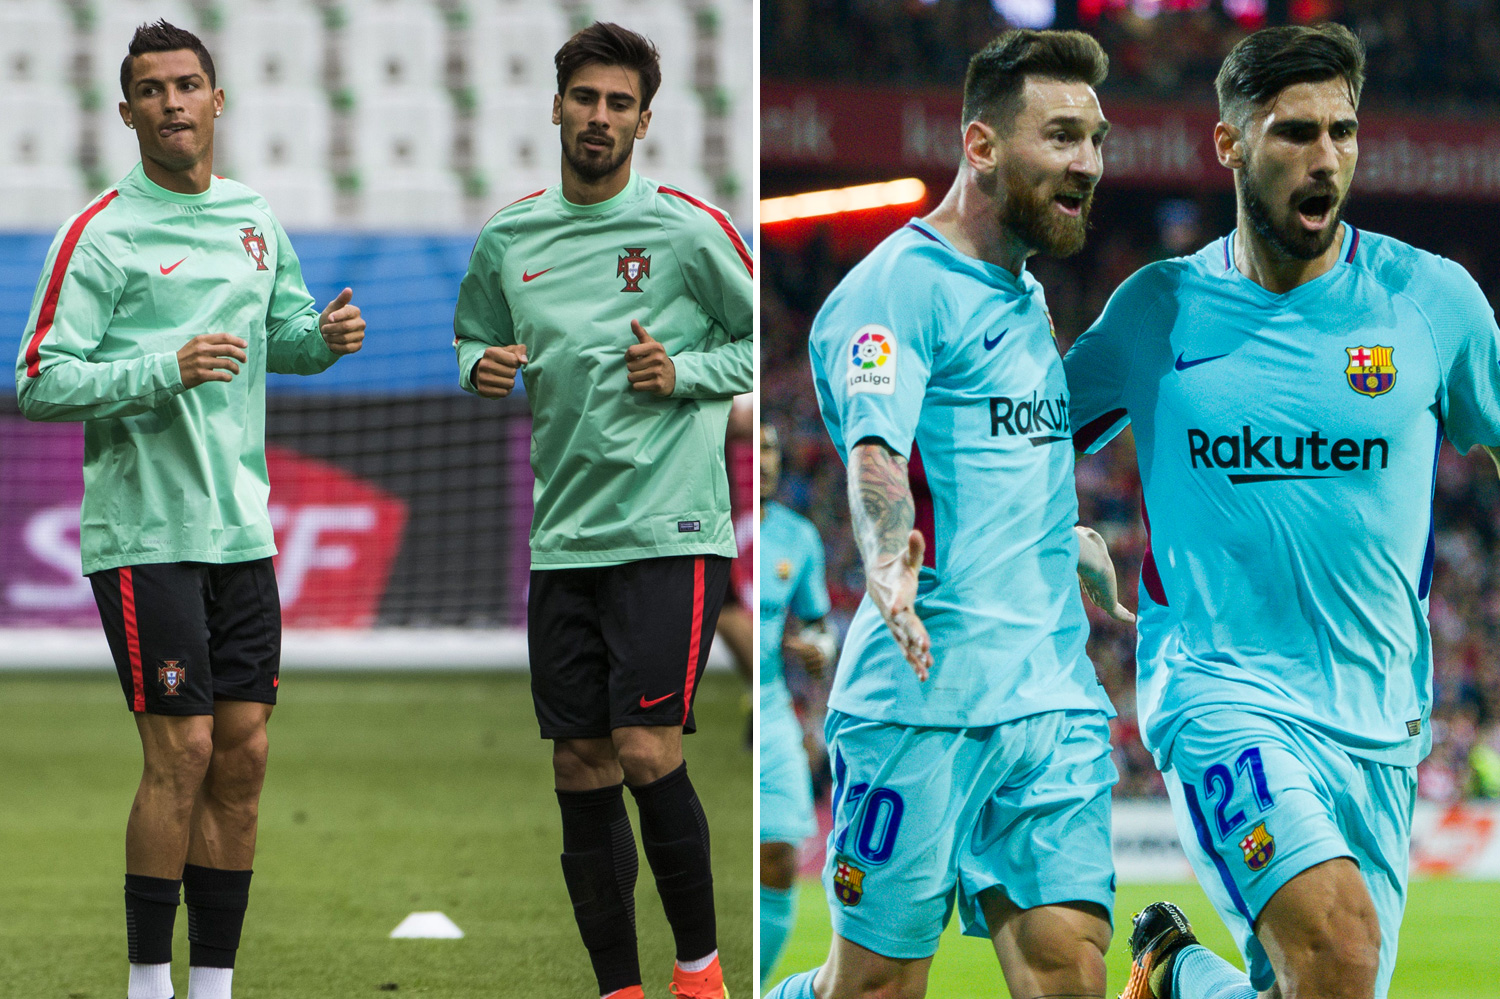 Gomes spent time with Messi at Barcelona and still plays with Ronaldo for Portugal now